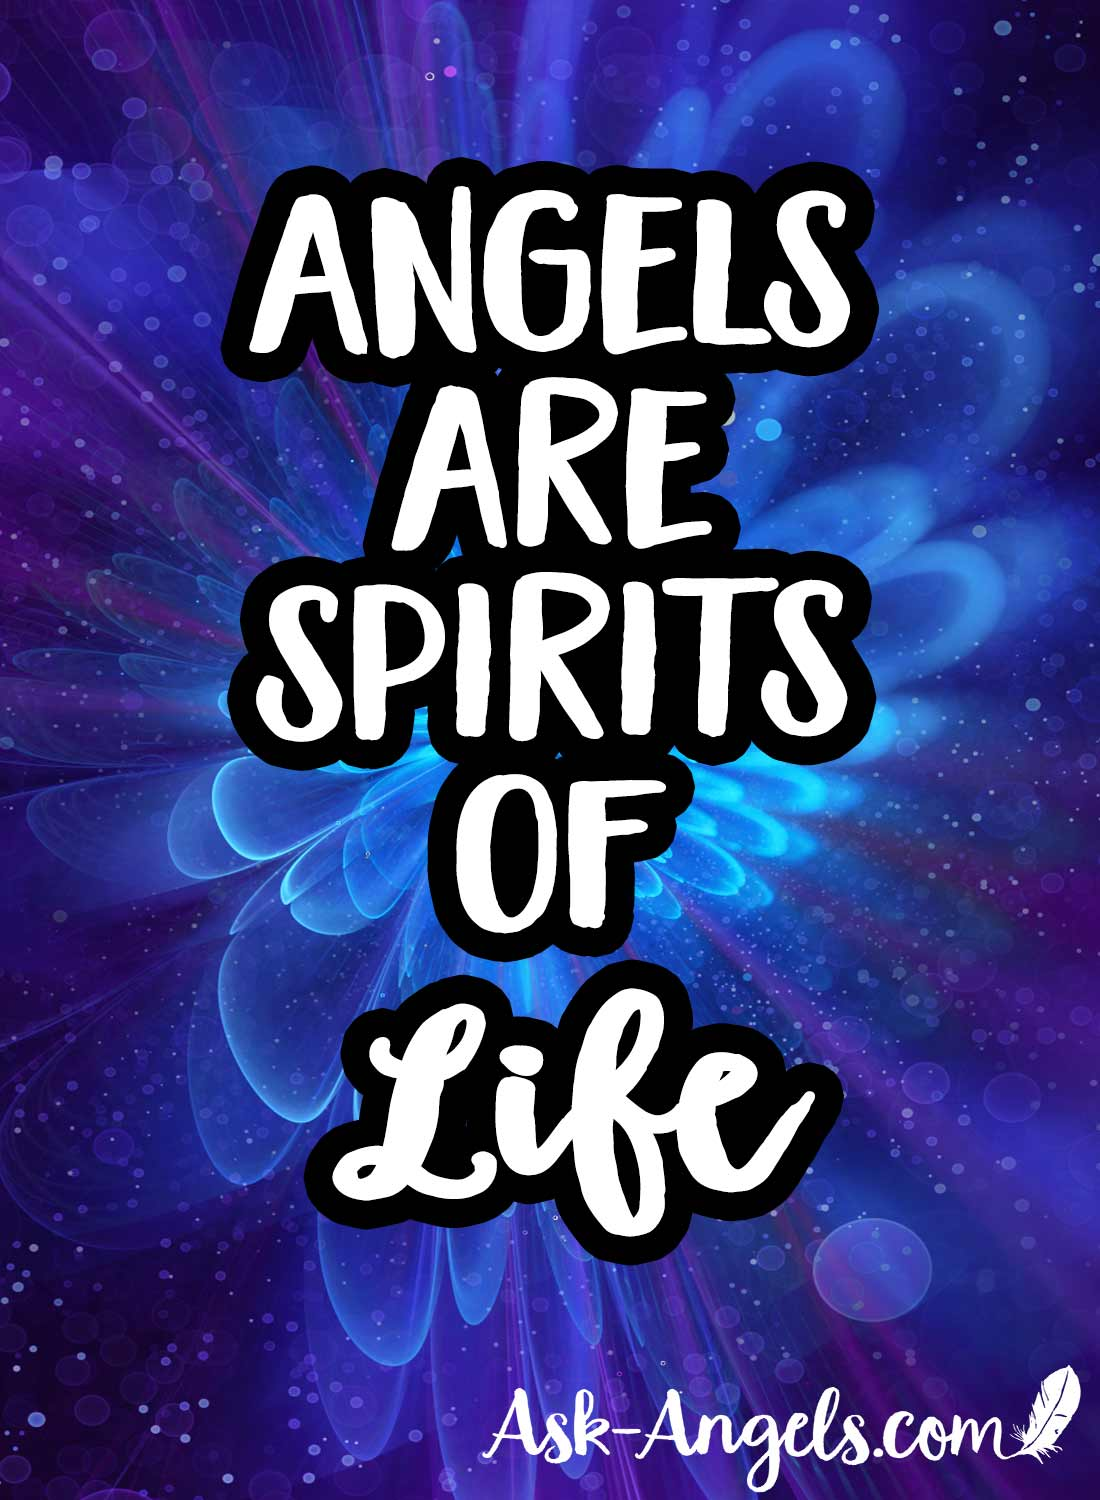 Angels are spirits of Life